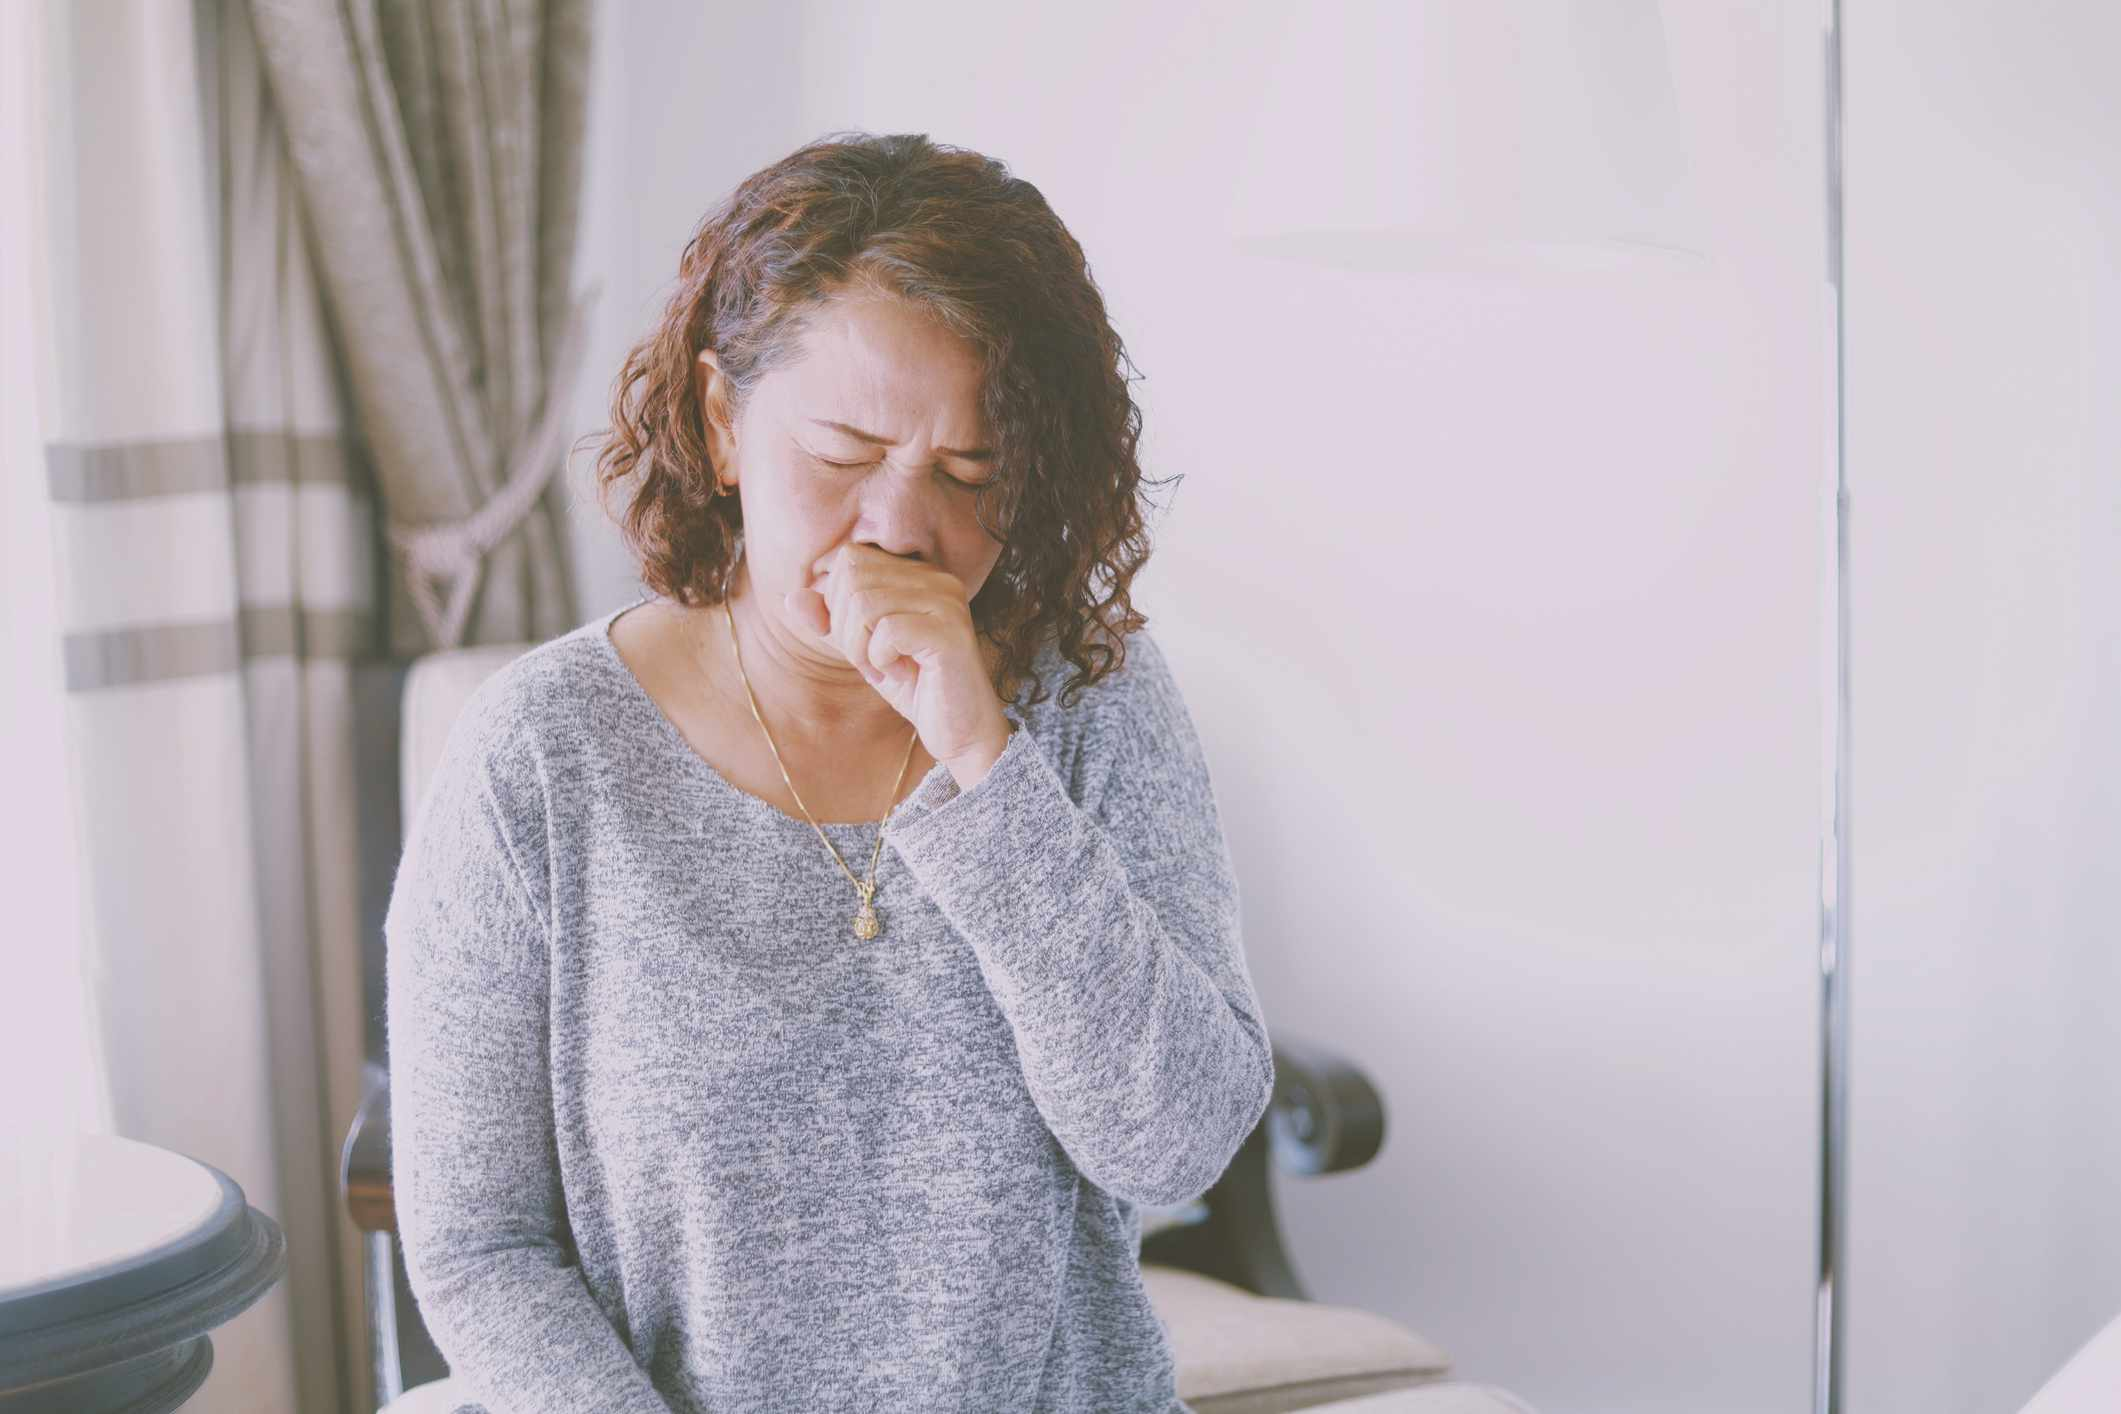 woman with cough might be prescribed benzonatate